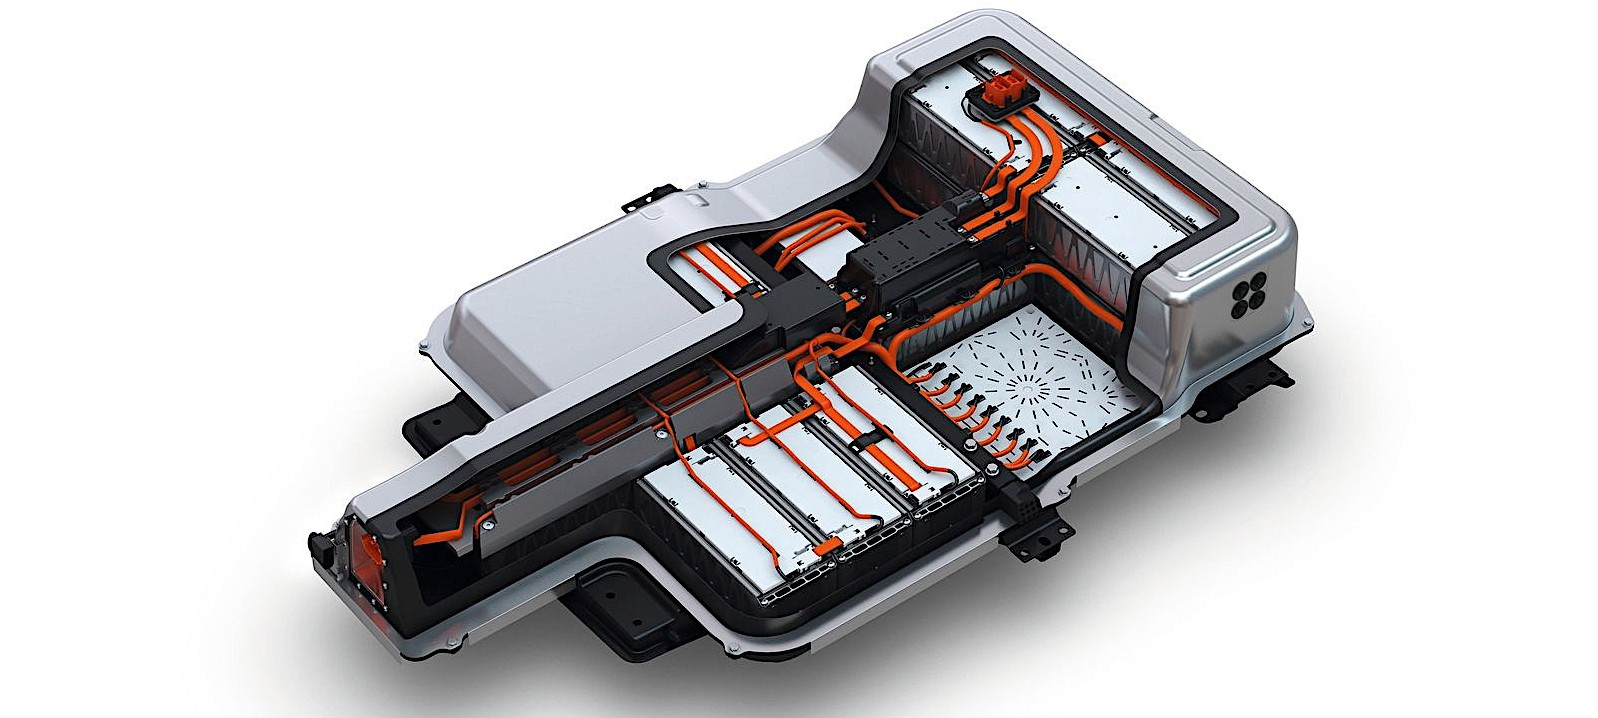 Battery Pack For Electric Vehicles Unit From Volkswagen Pictured